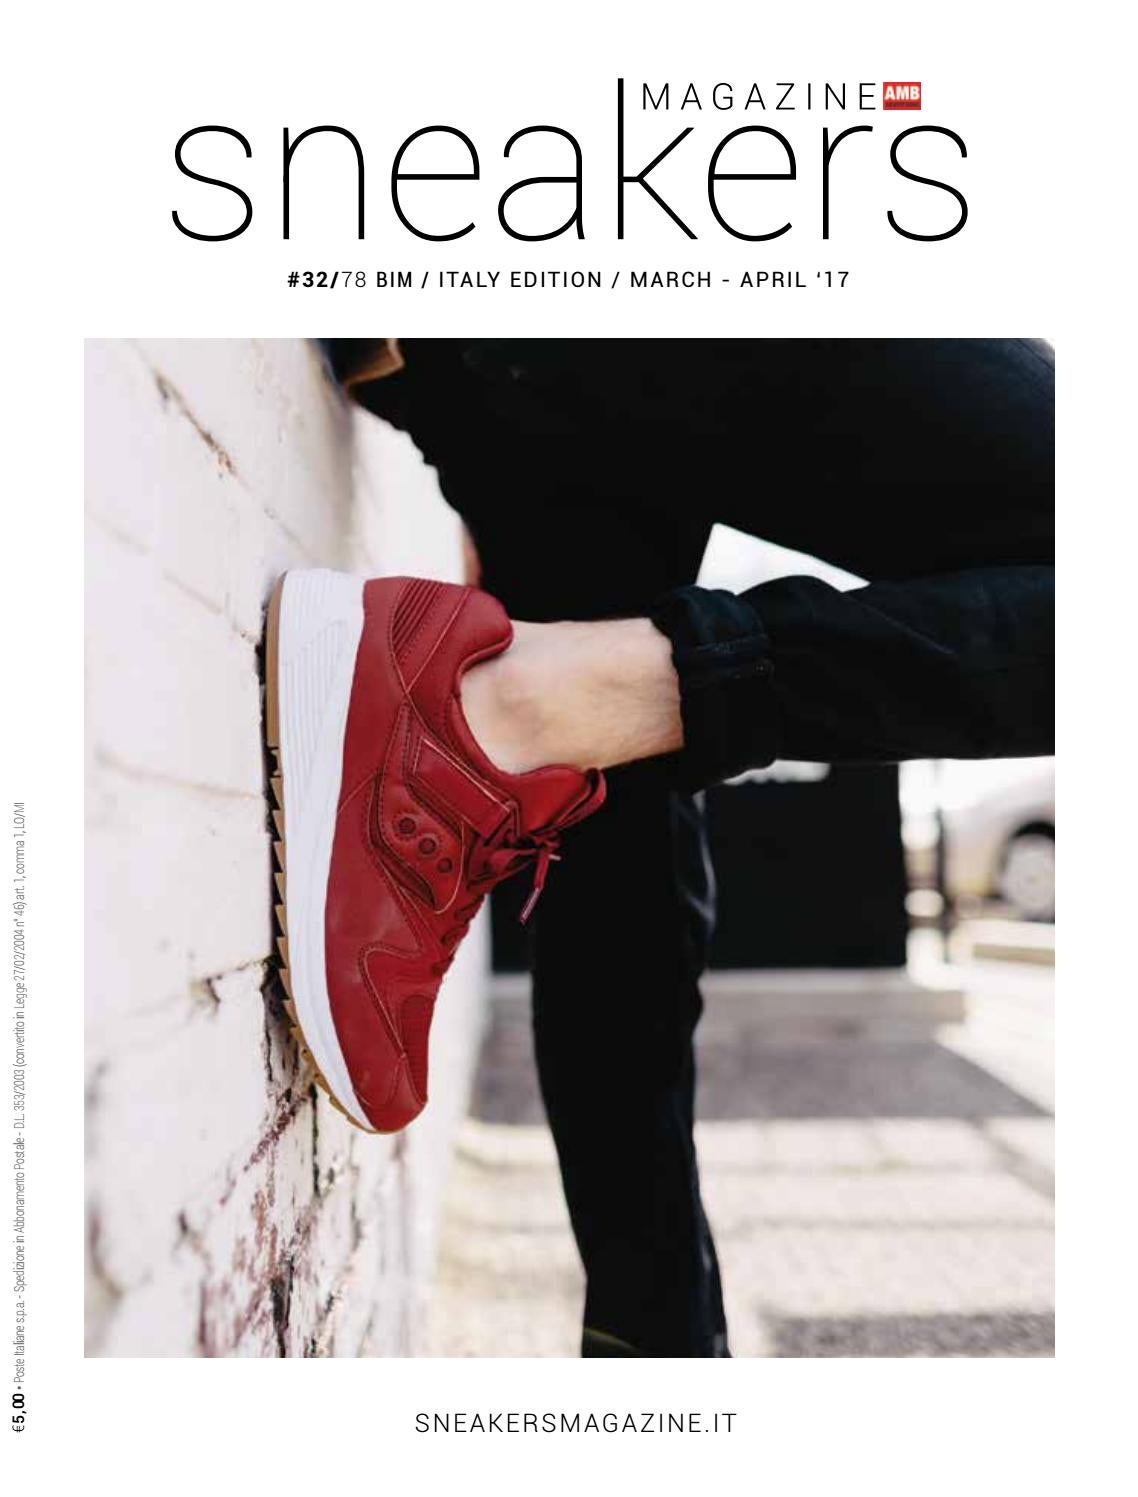 SNEAKERS magazine Issue 78 – Digital Edition by Sneakers